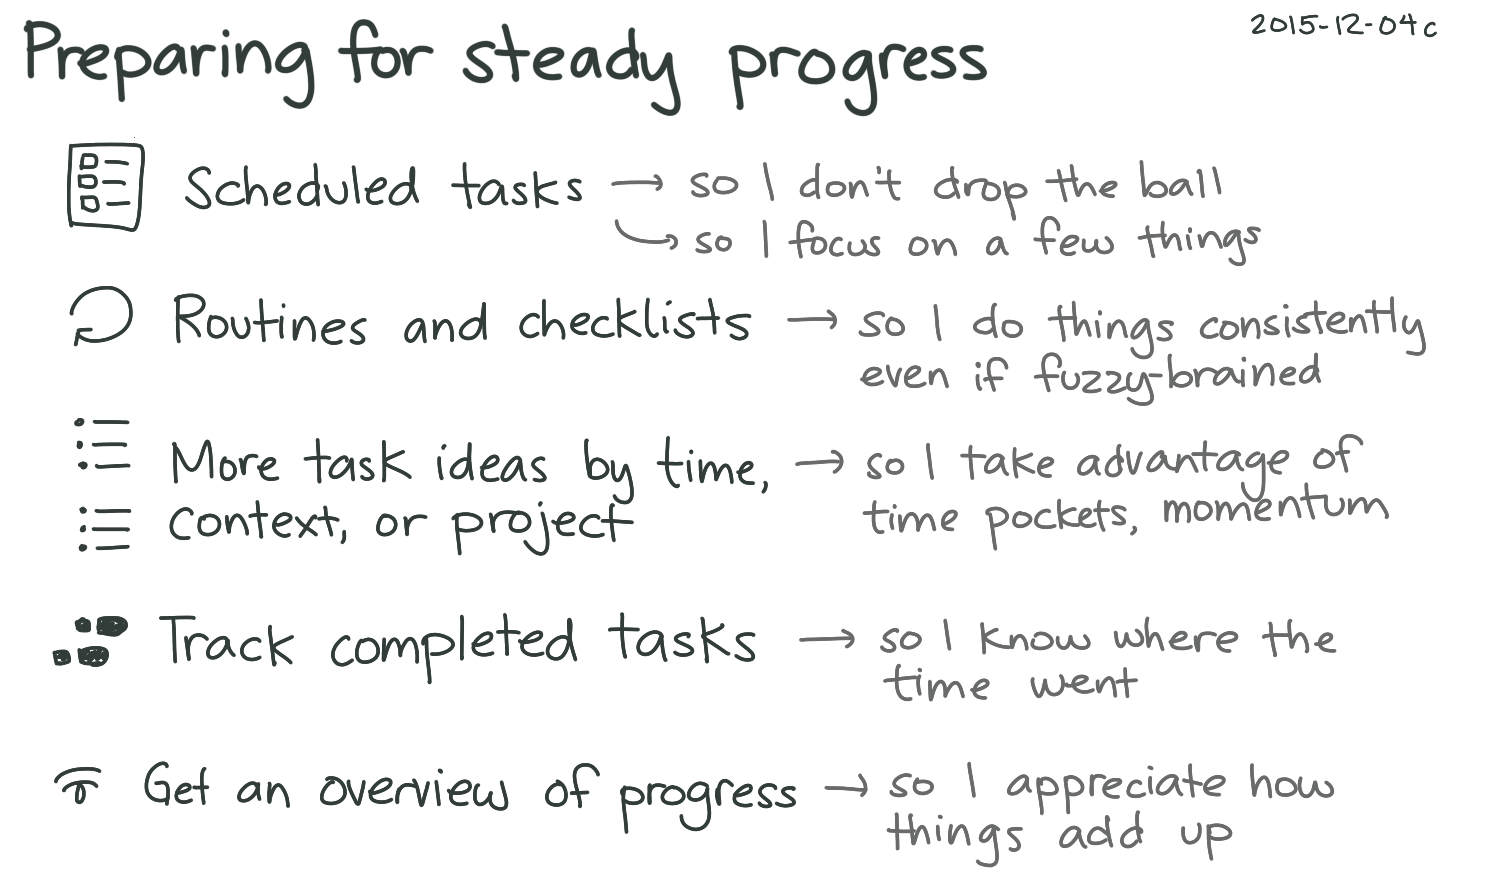 Finding emacs lisp code 2015 12 04c preparing for steady progress index card productivity fandeluxe Image collections